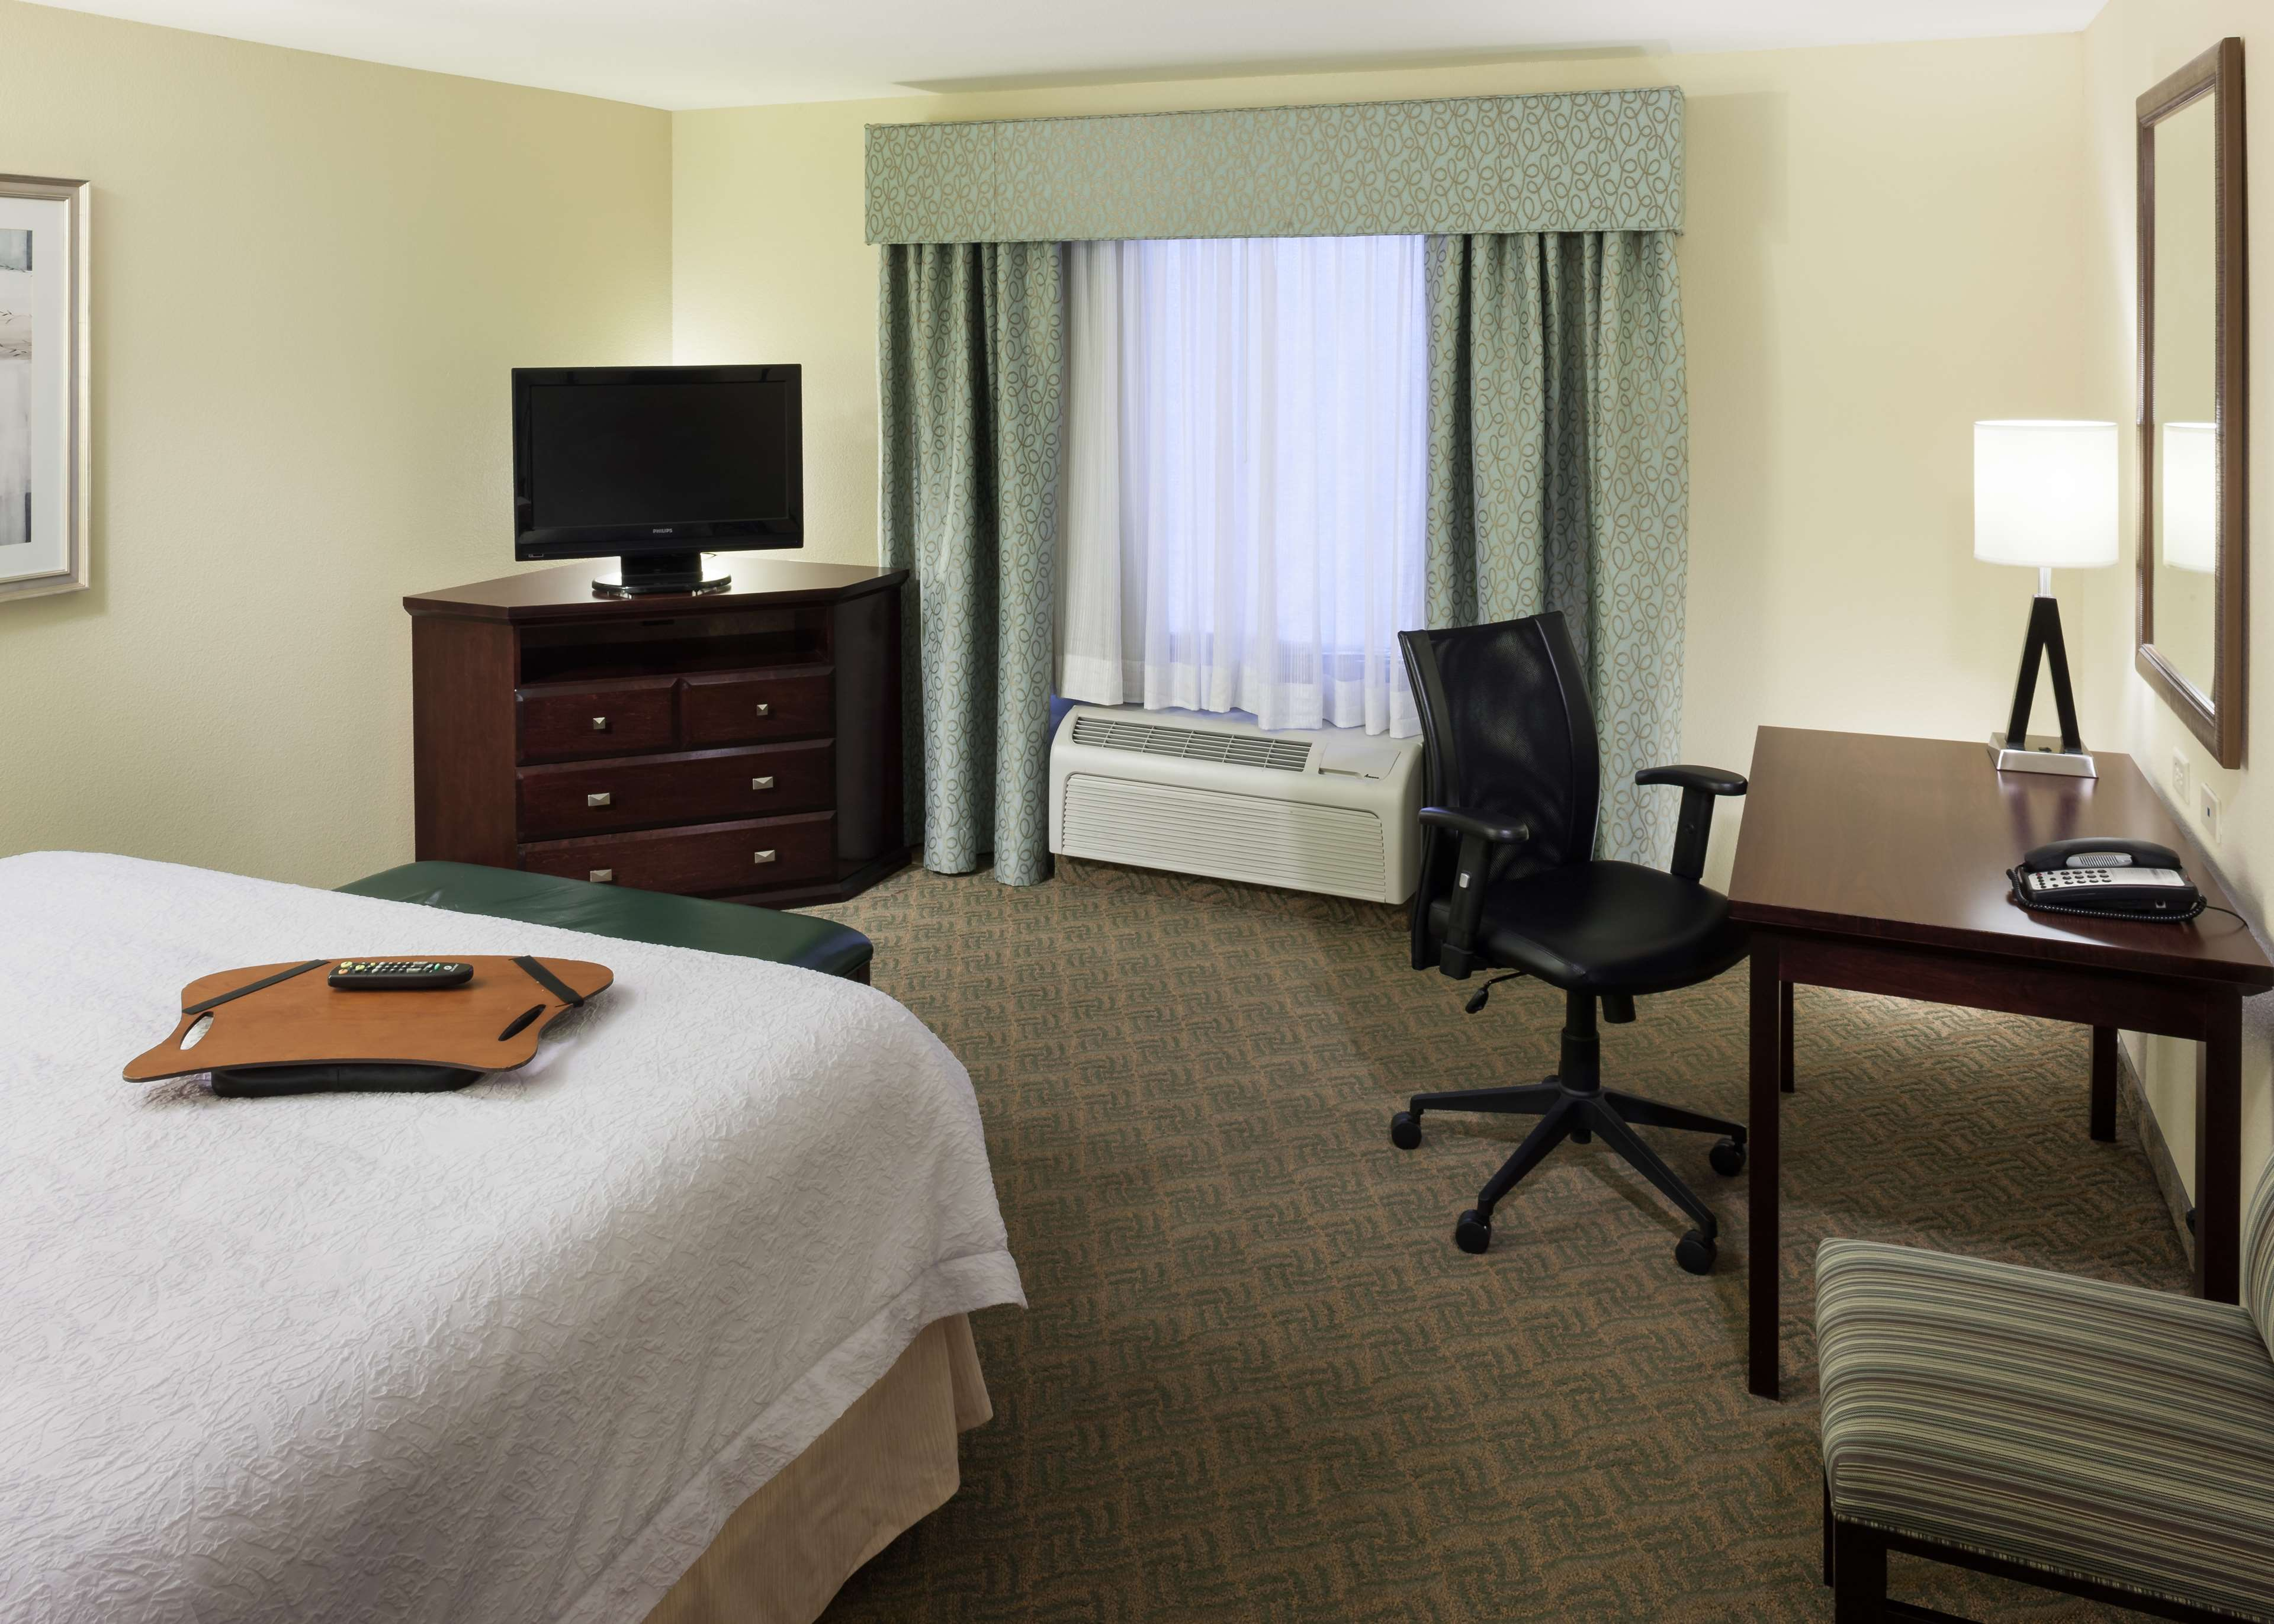 Hampton Inn & Suites Dallas-Arlington-South image 44